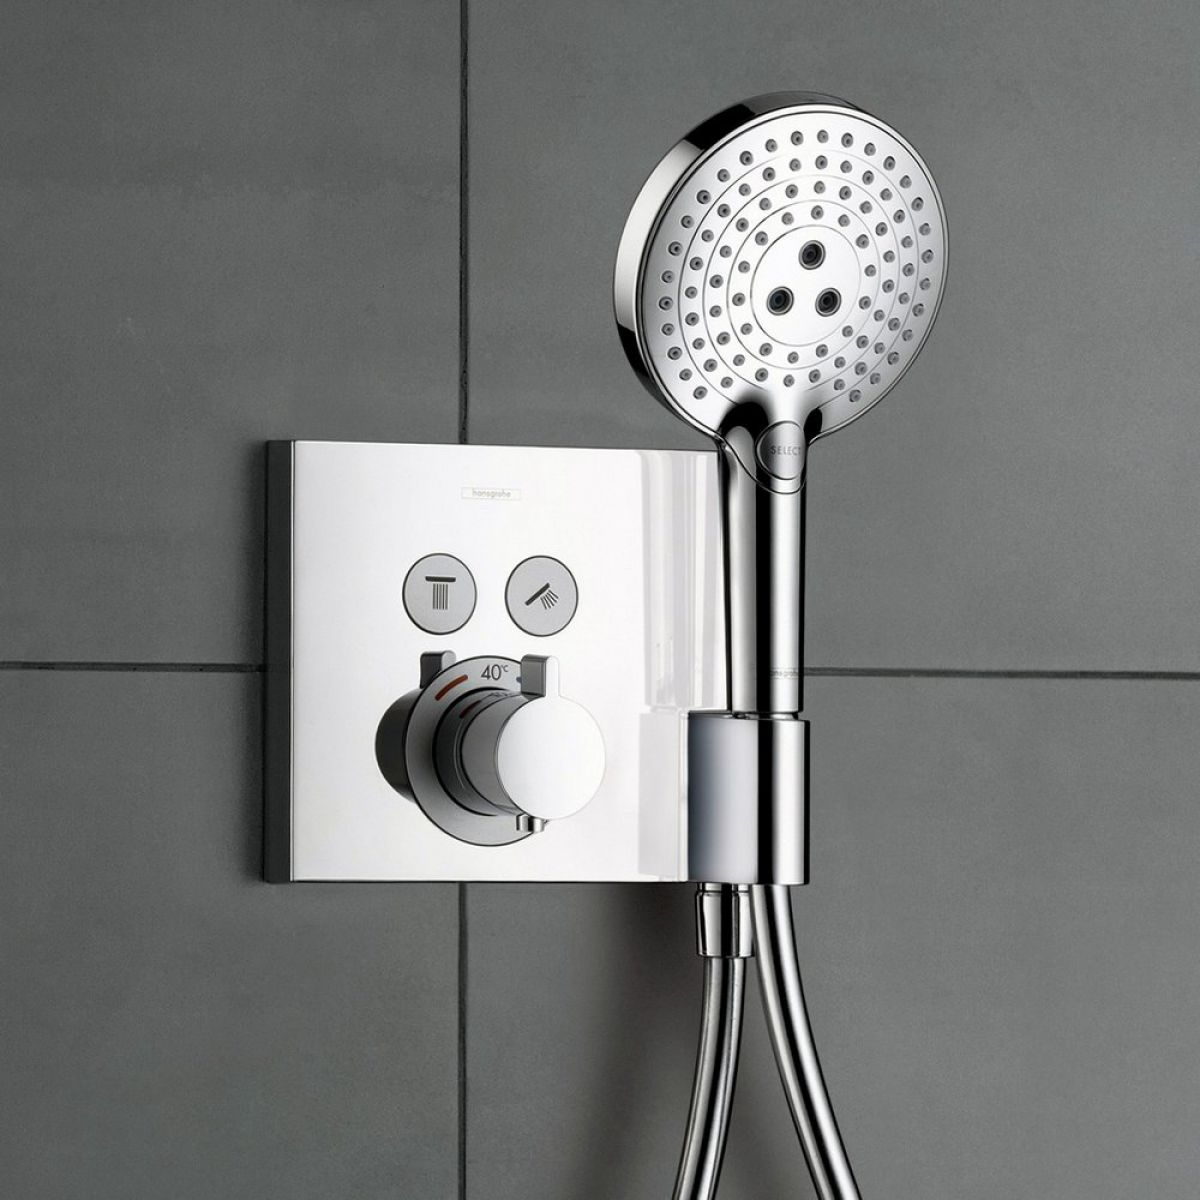 Shower Fittings Including Mixers Valves Heads Pumps Uk Wiring An Electric Amp Power Concealed Valve Showers